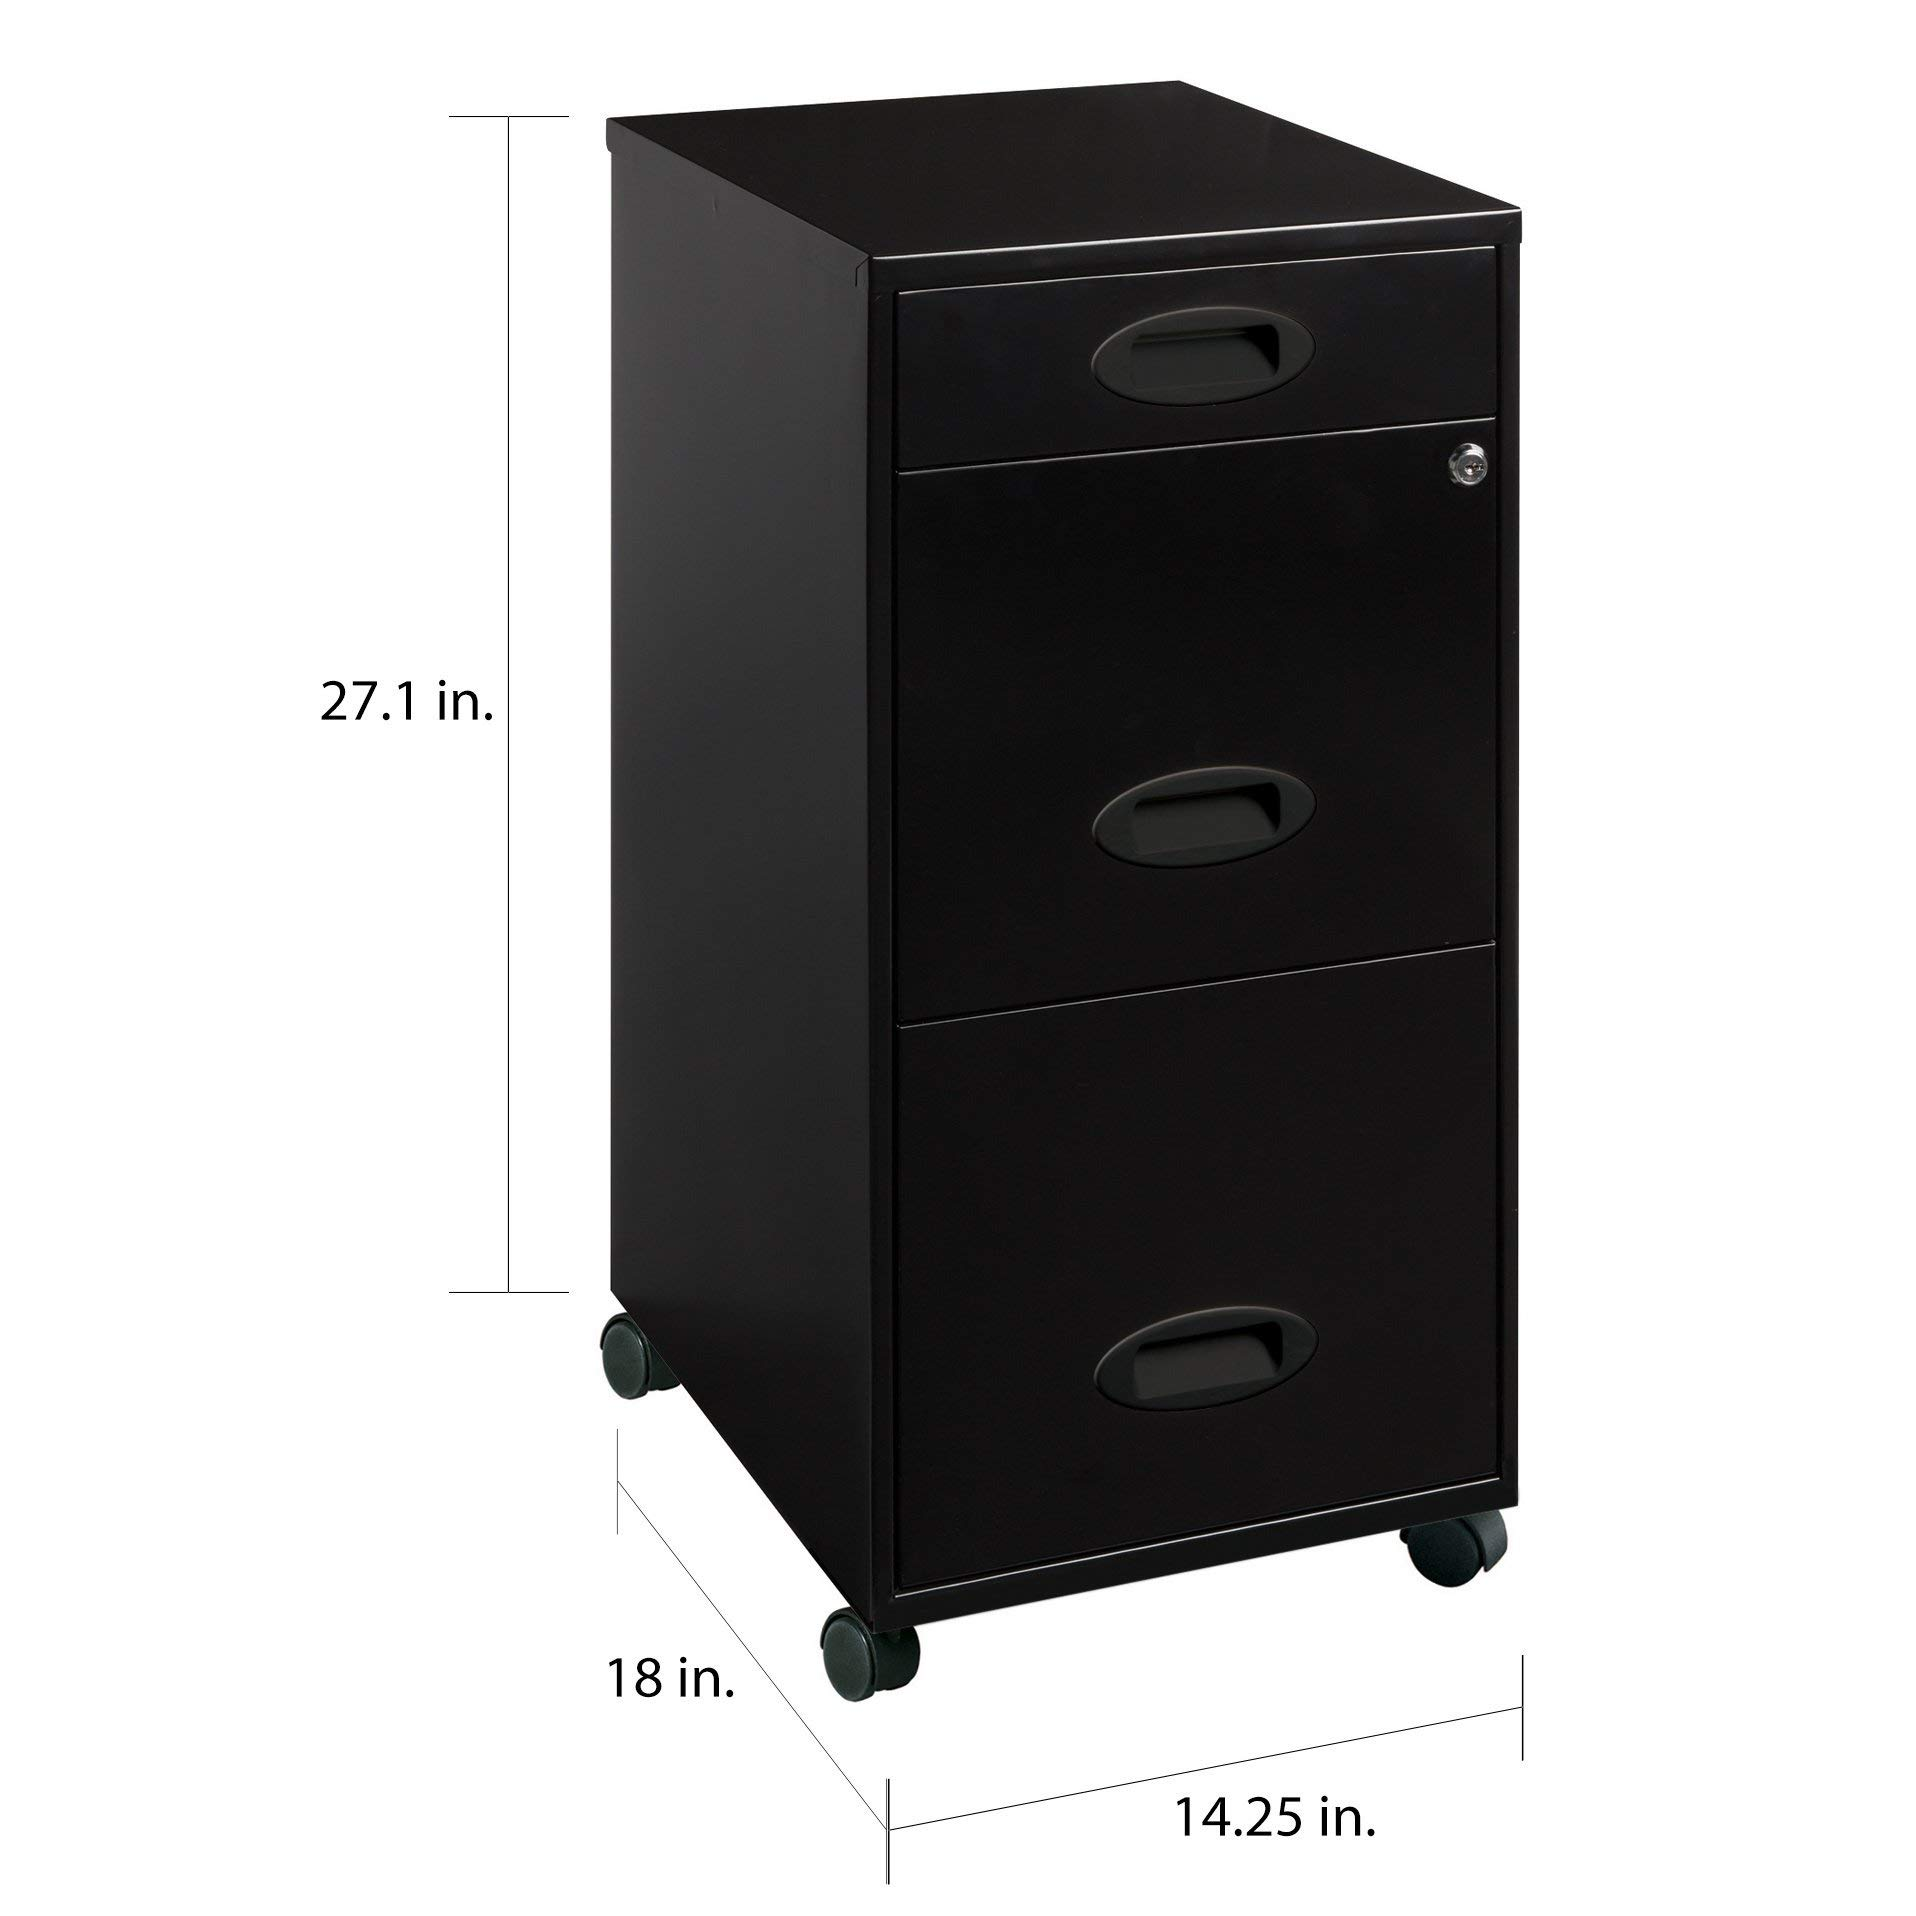 Mobile File Stand Cabinet with Casters and 3 Drawers, Portable Office Organizer,Home Office Work Station,Under Desk Storage Cart, Accent Modern Cart on Wheels,Black by Nova Natural (Image #2)